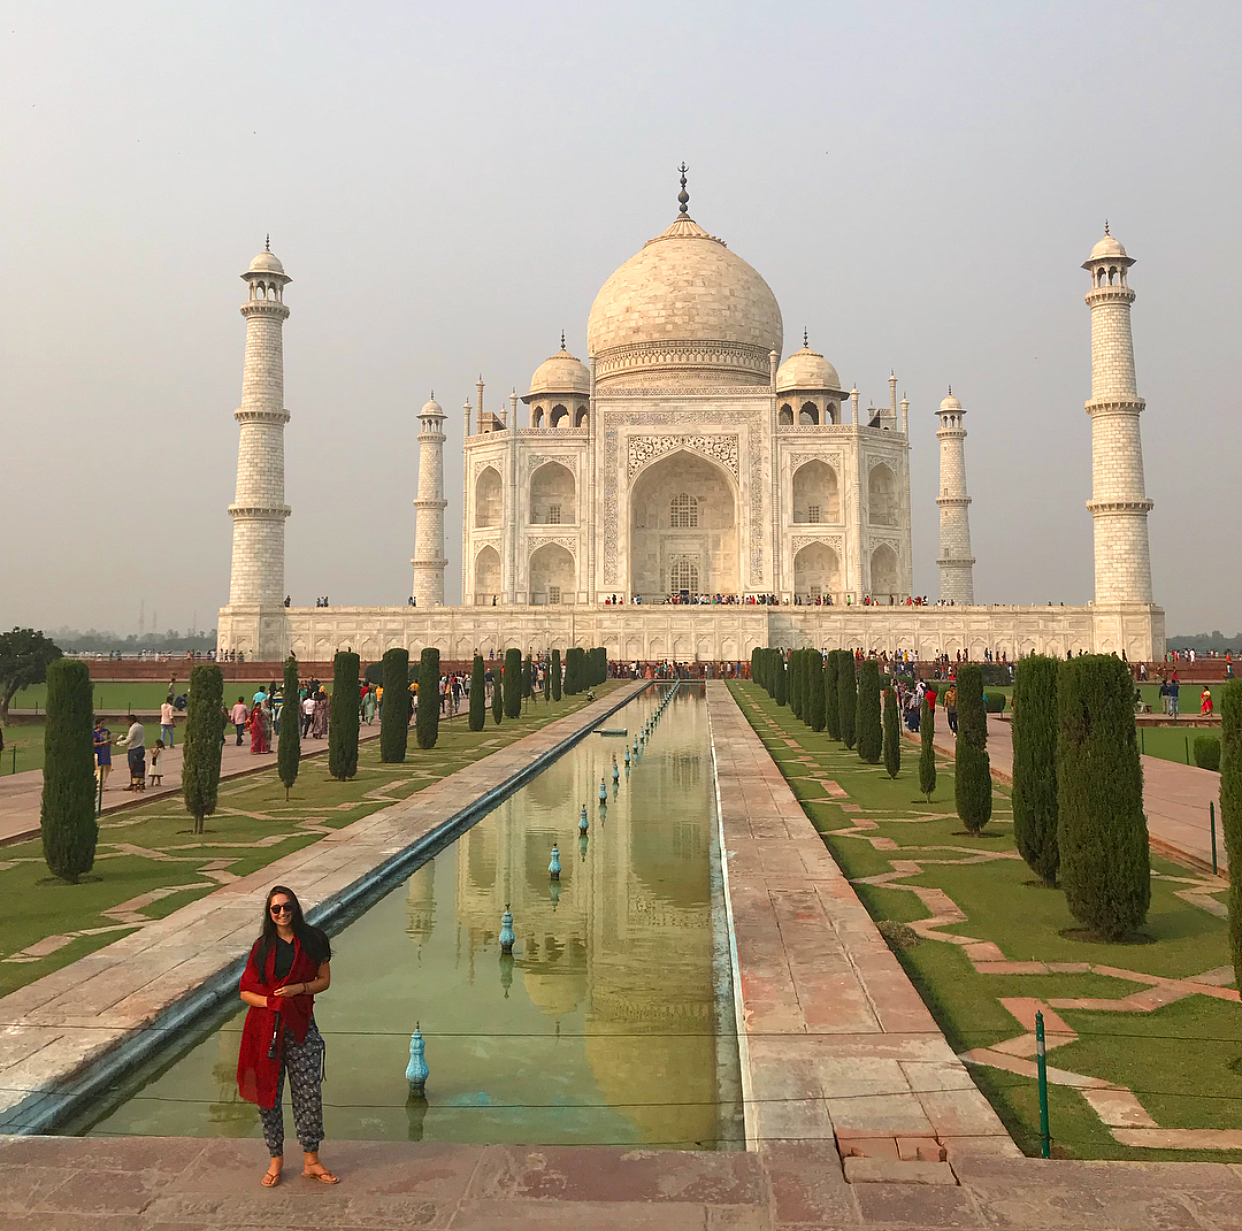 The Taj Mahal in all its wonder.